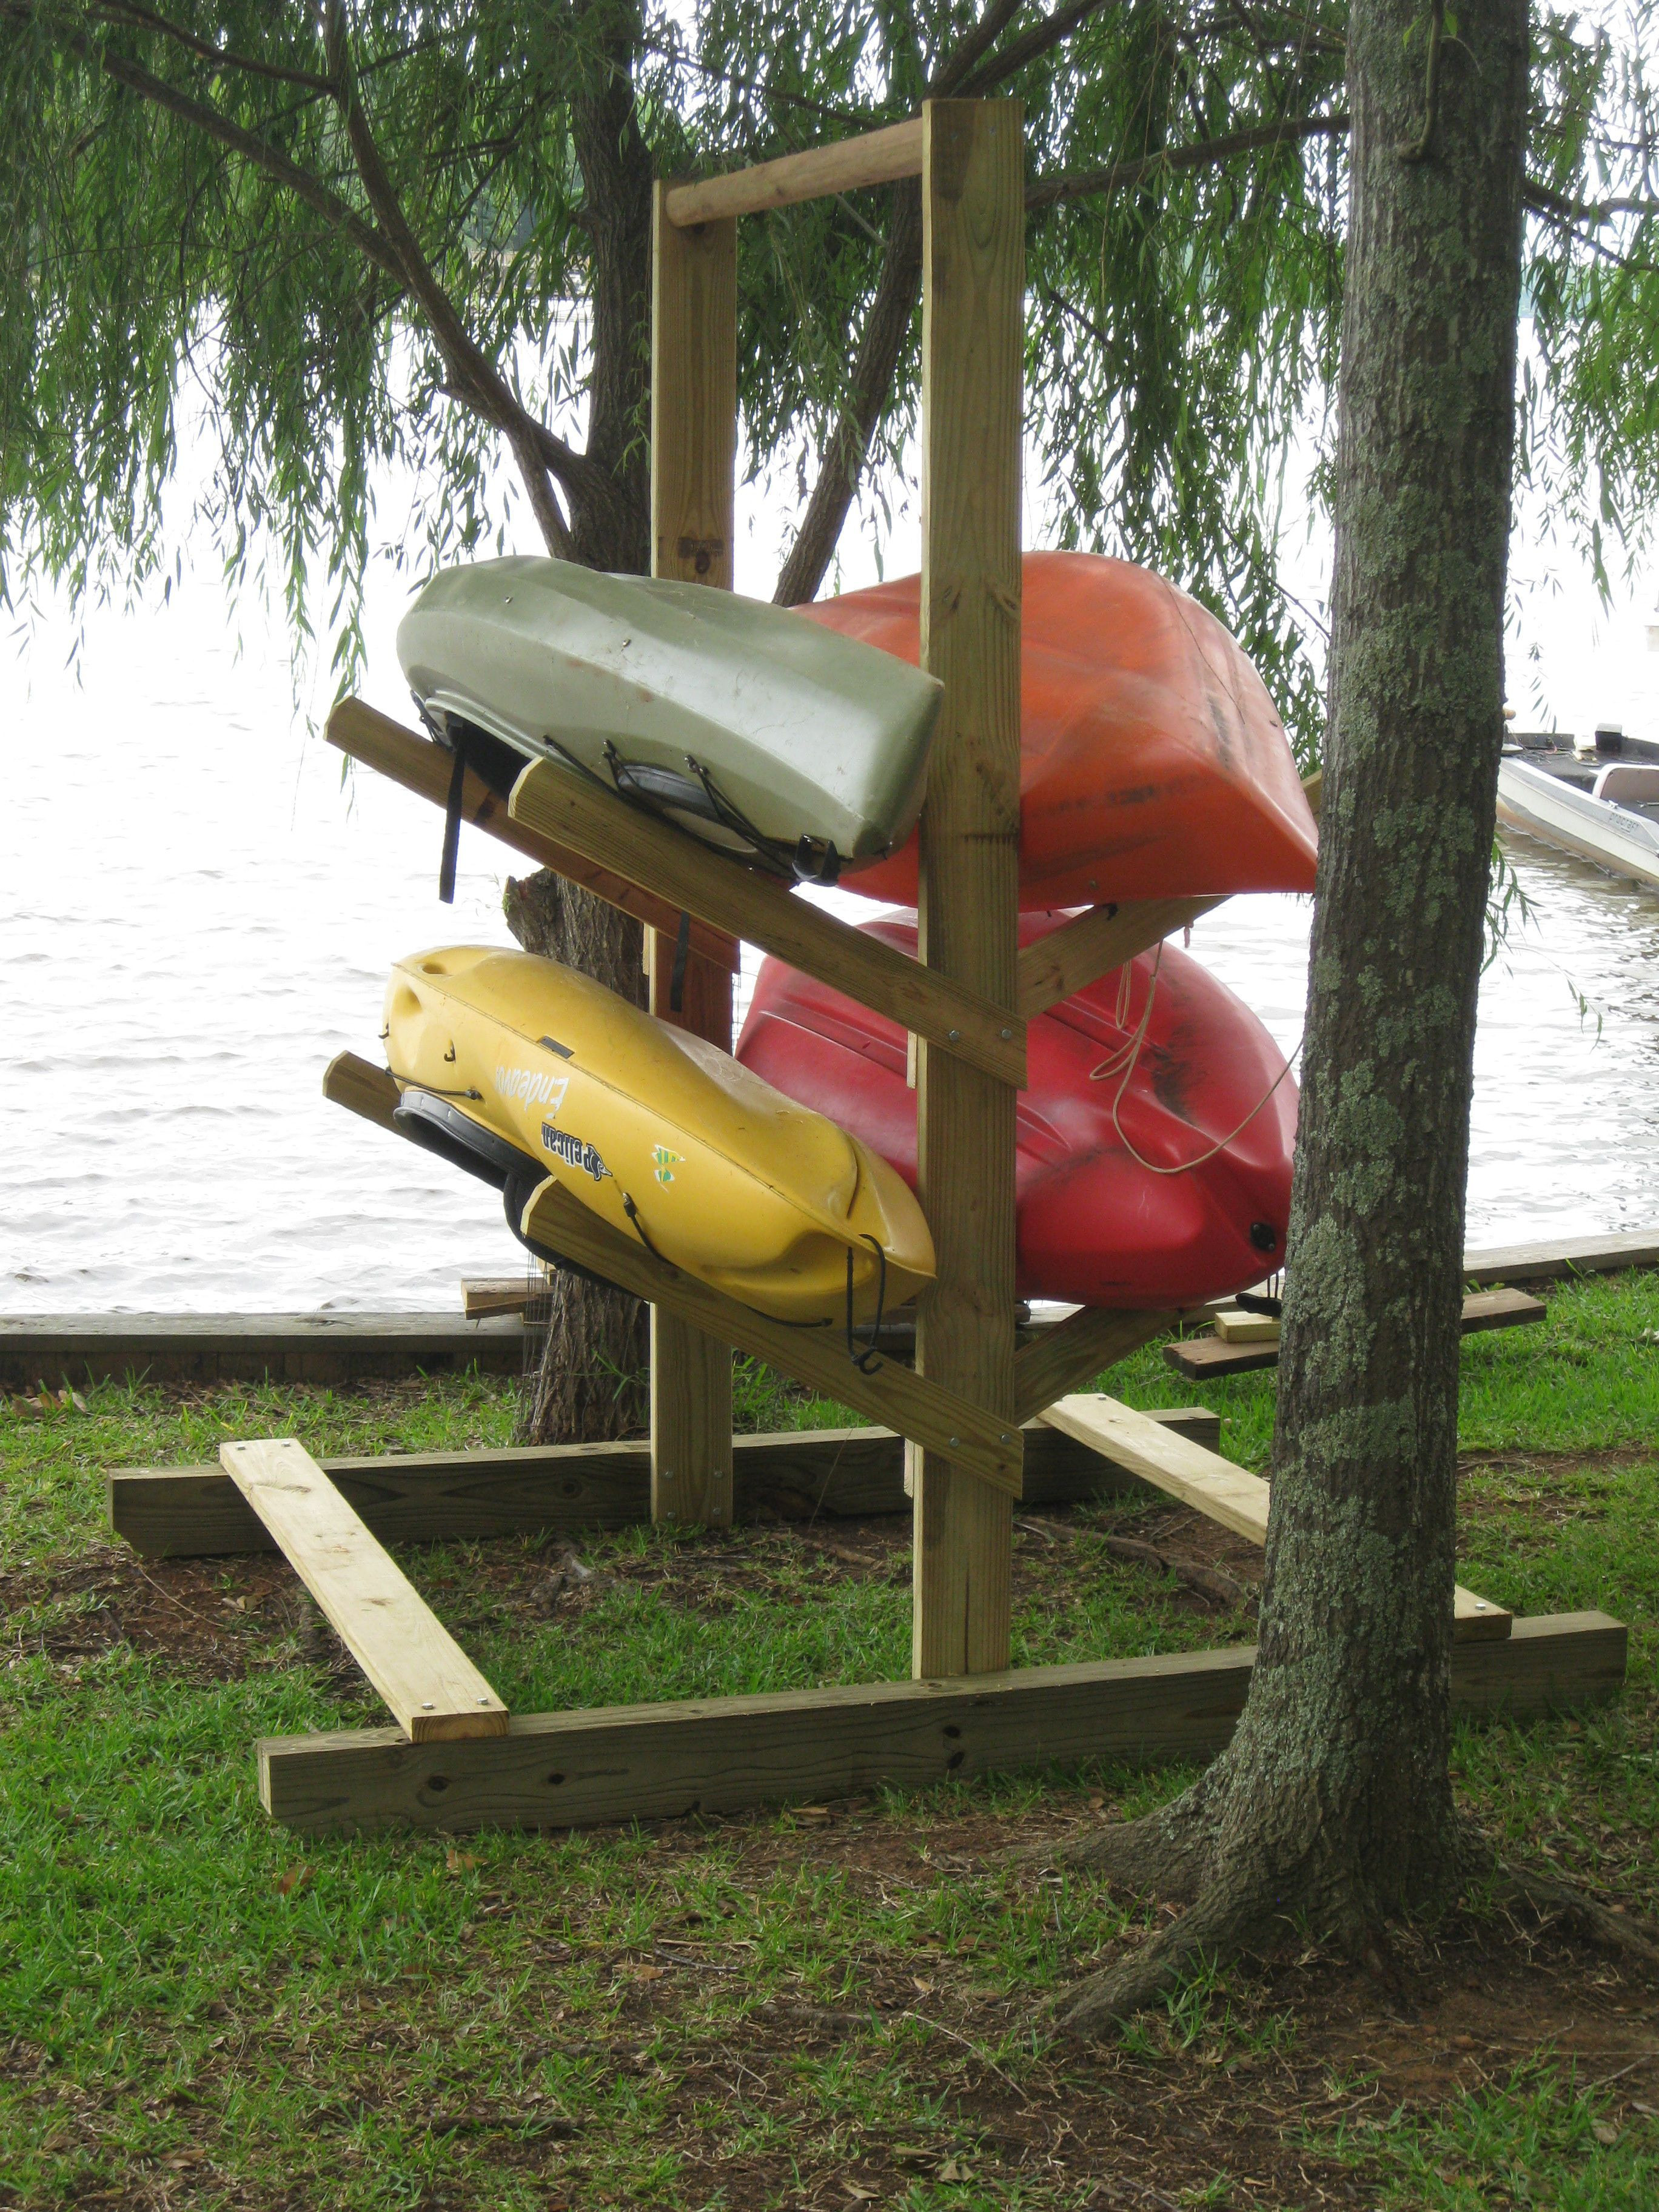 Best ideas about DIY Canoe Rack . Save or Pin Best 25 Kayak stand ideas on Pinterest Now.